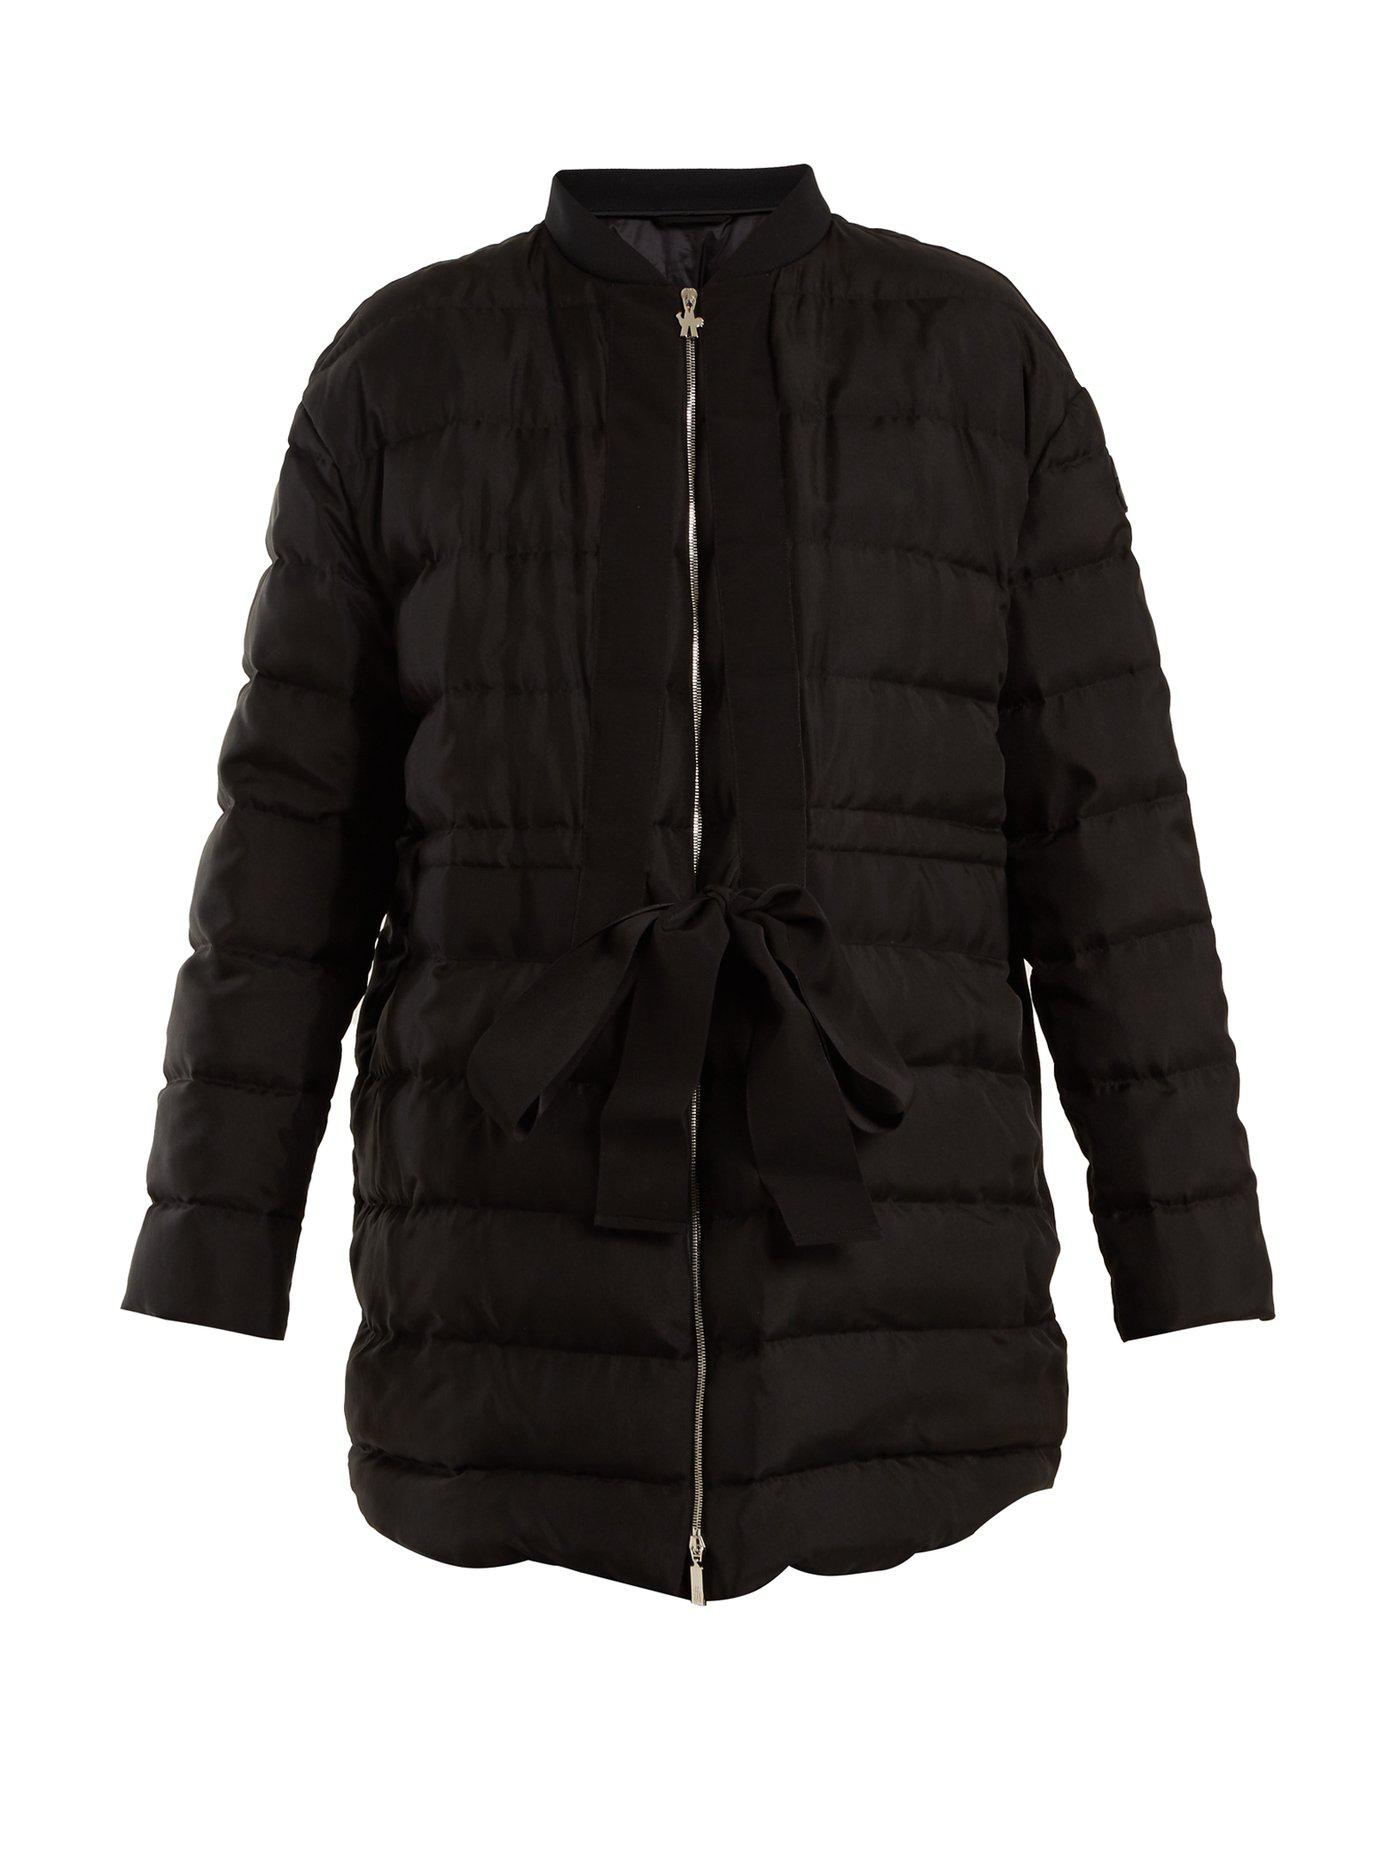 Moncler Gamme Rouge. Women's Black Ramasse Silk Quilted Down Jacket